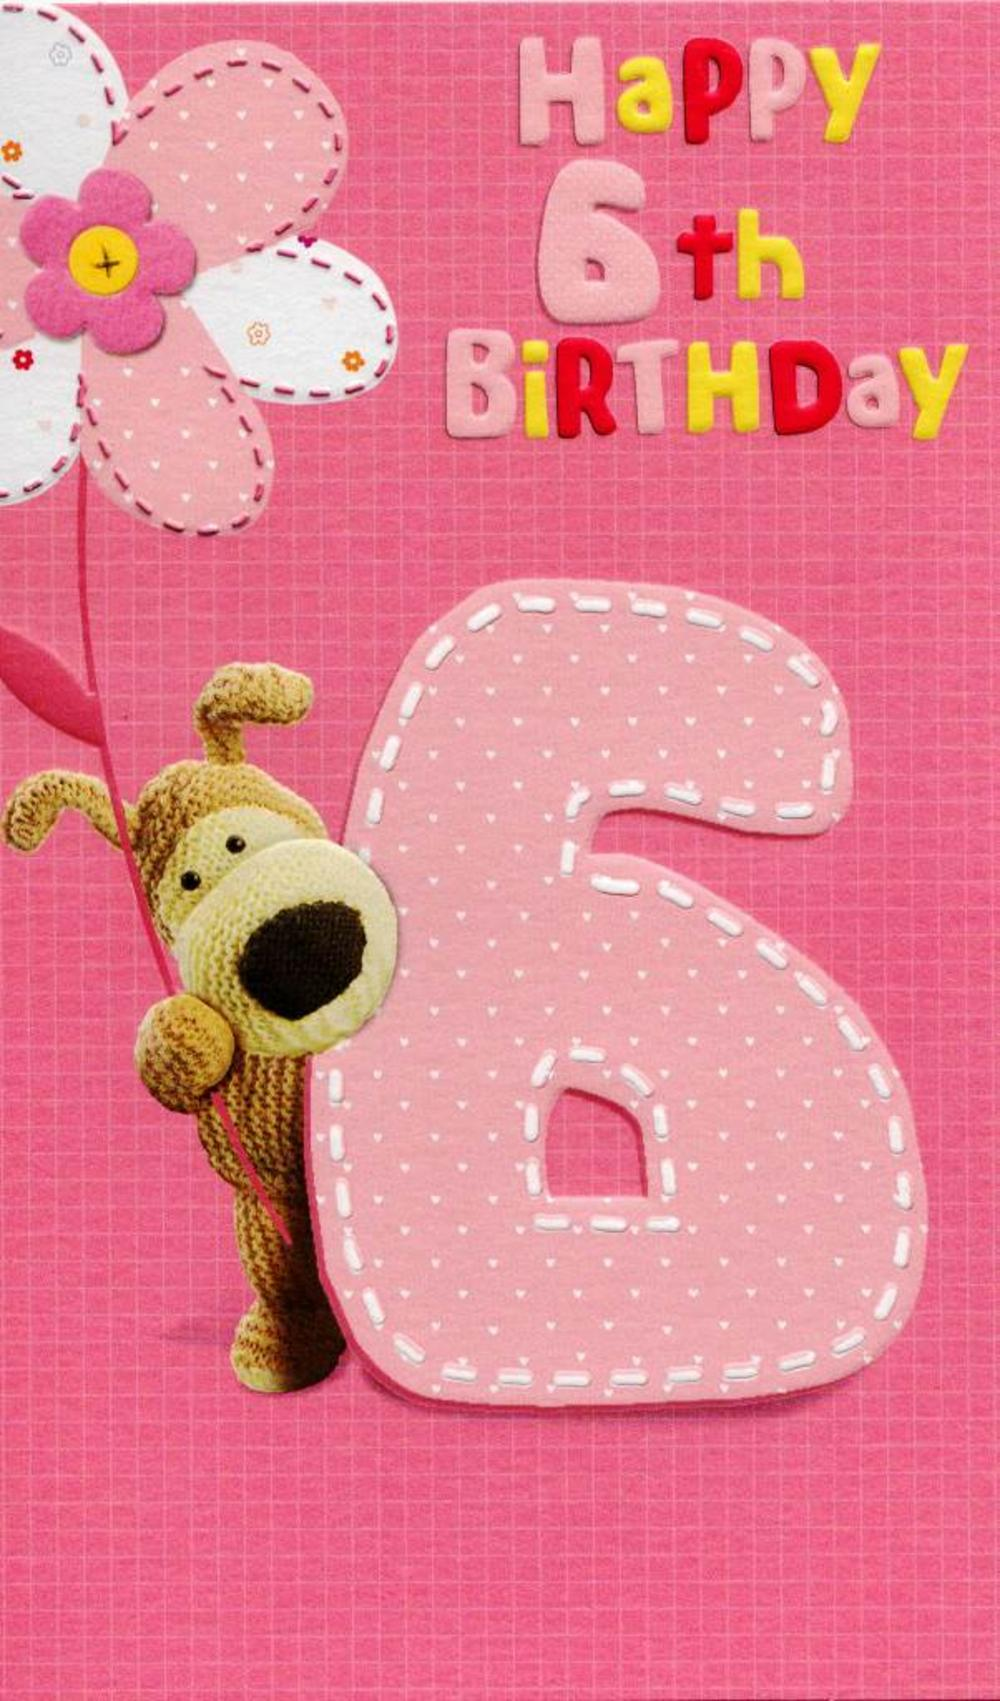 happy 6th birthday granddaughter images